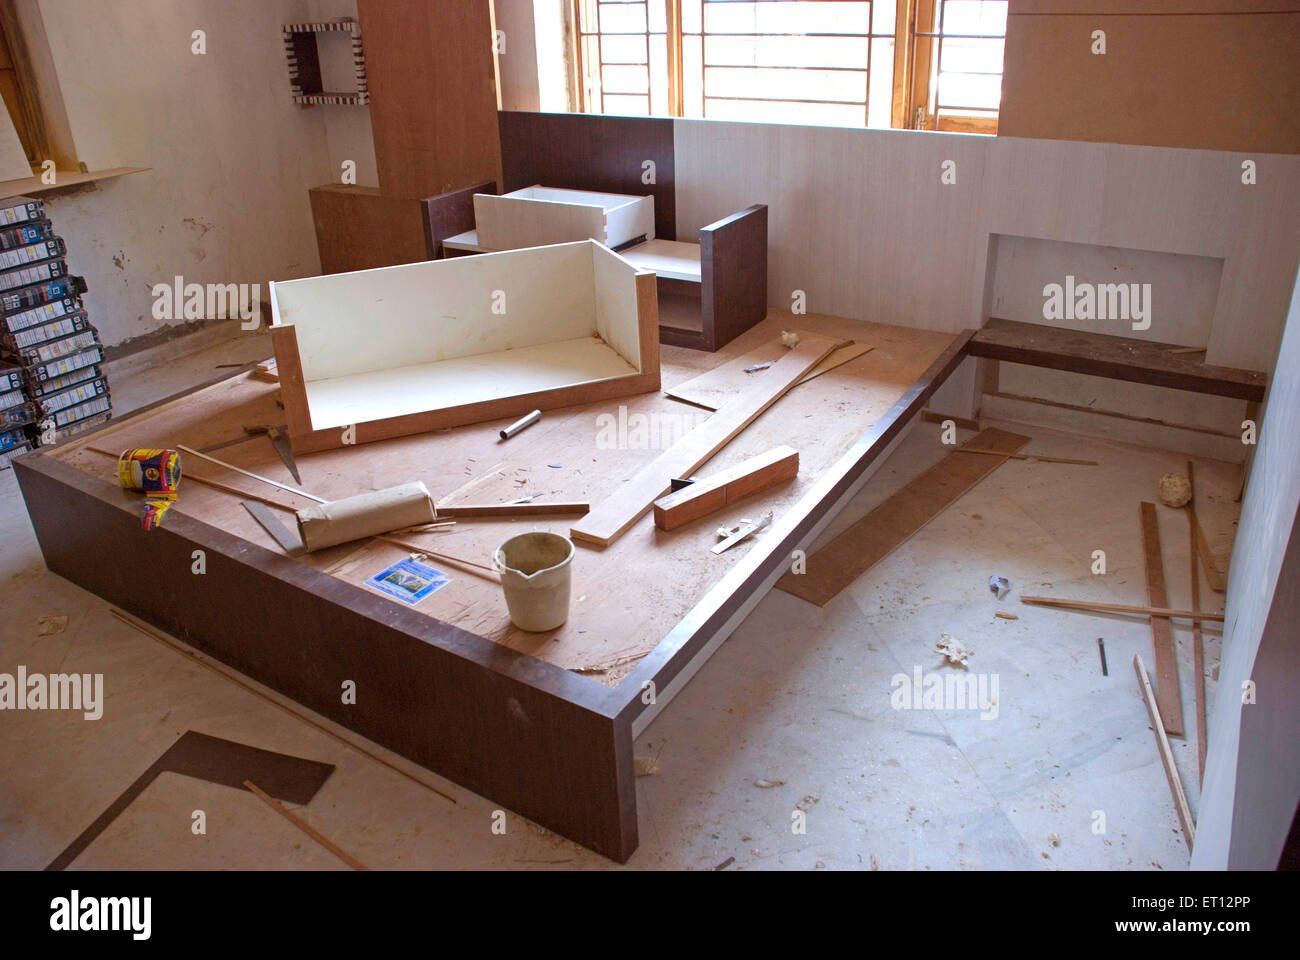 Incomplete carpentry work - Stock Image